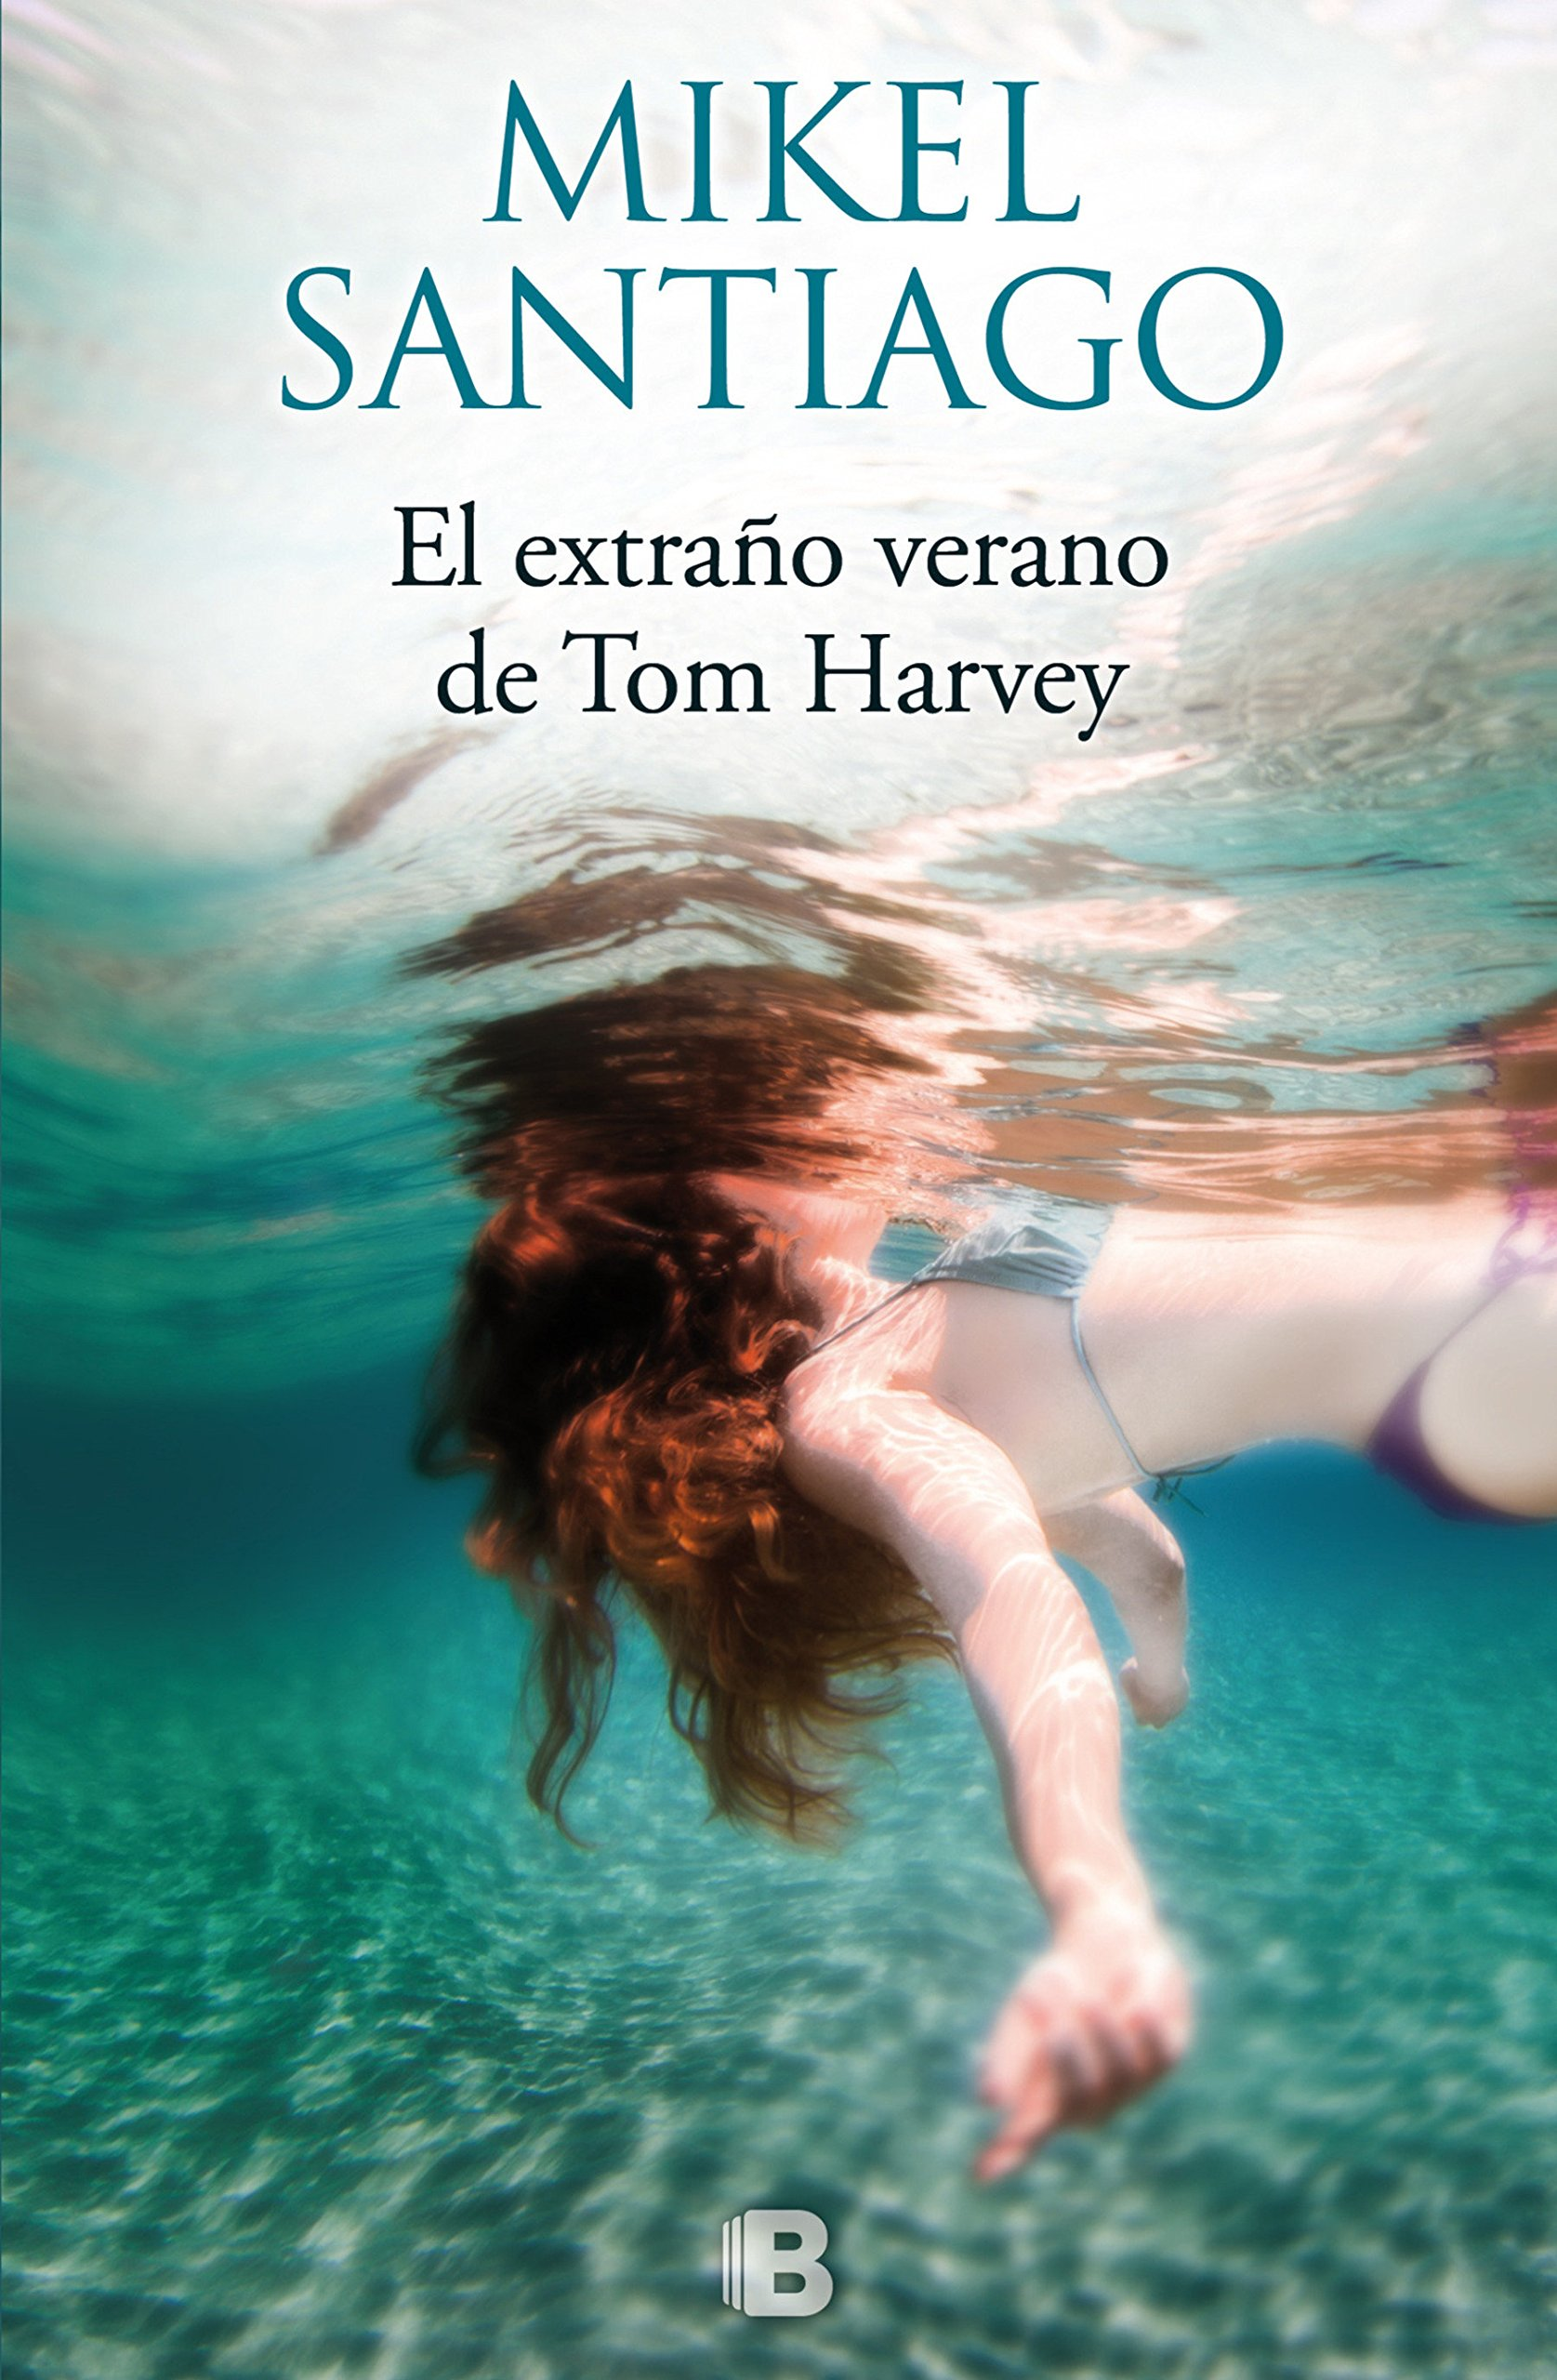 El Extraño Verano De Tom Harvey The Strange Summer Of Tom Harvey La Trama Spanish Edition 9788466661058 Santiago Mikel Books